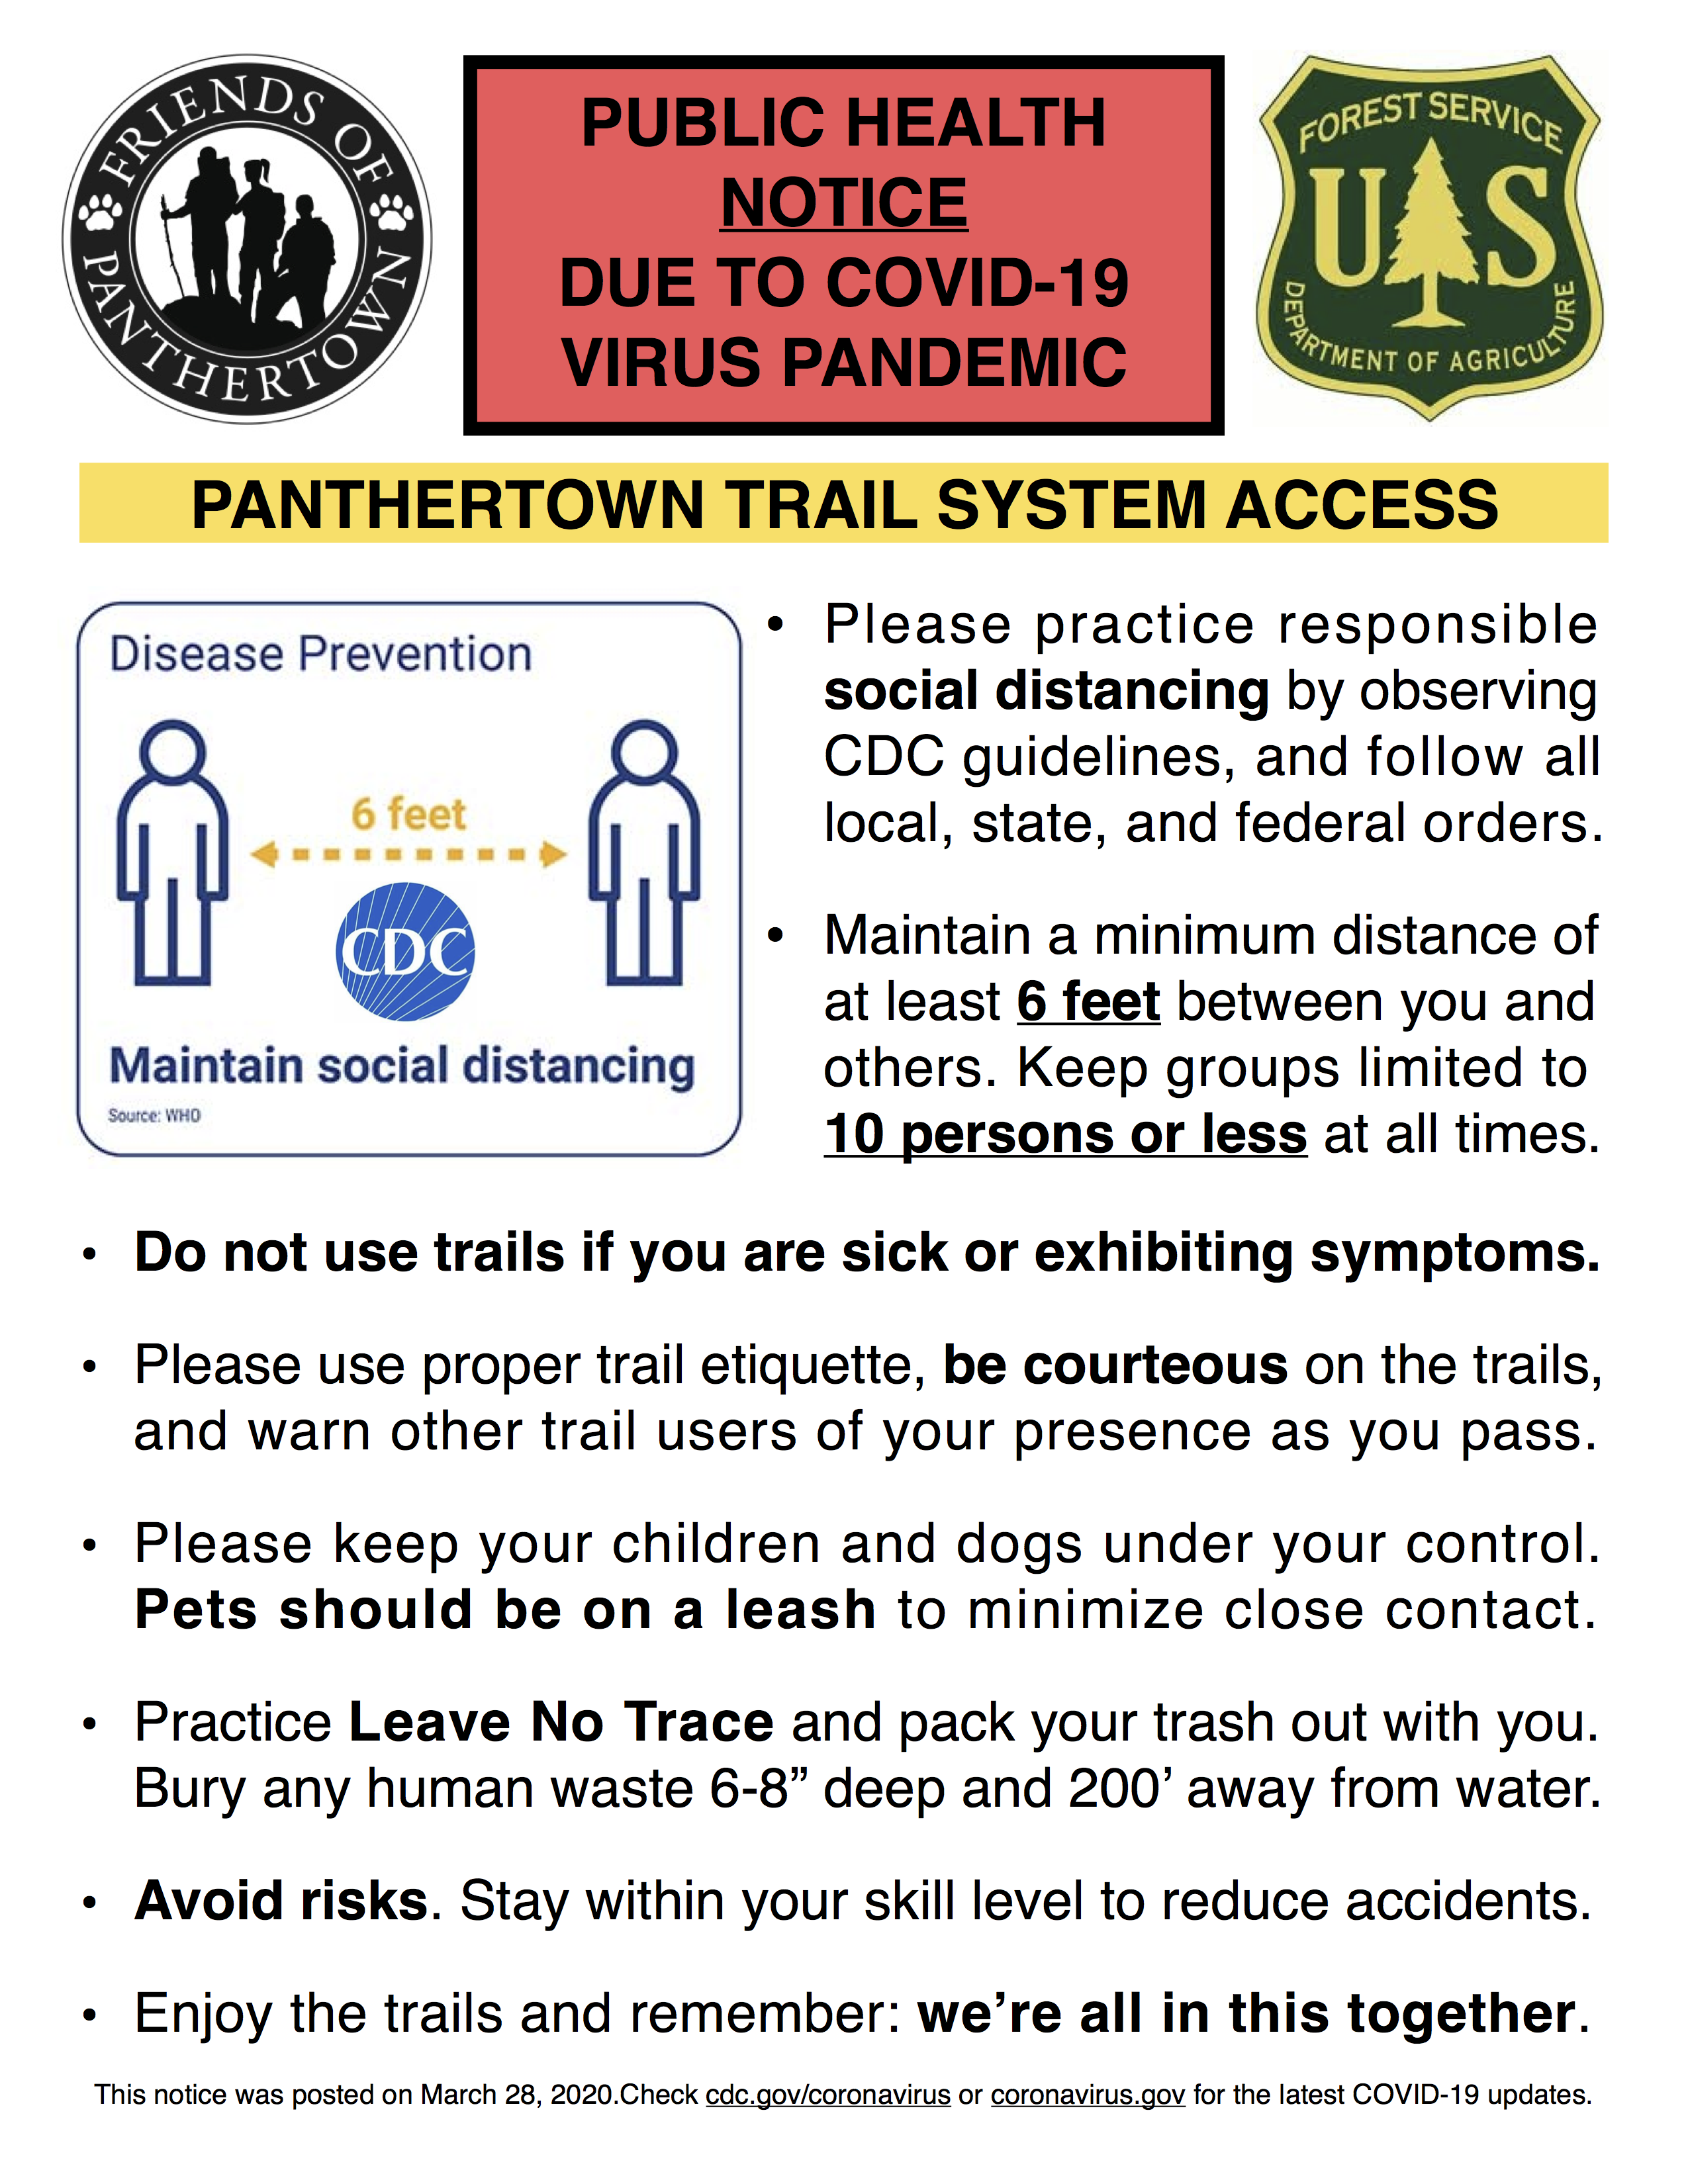 COVID-19 Notice for Panthertown